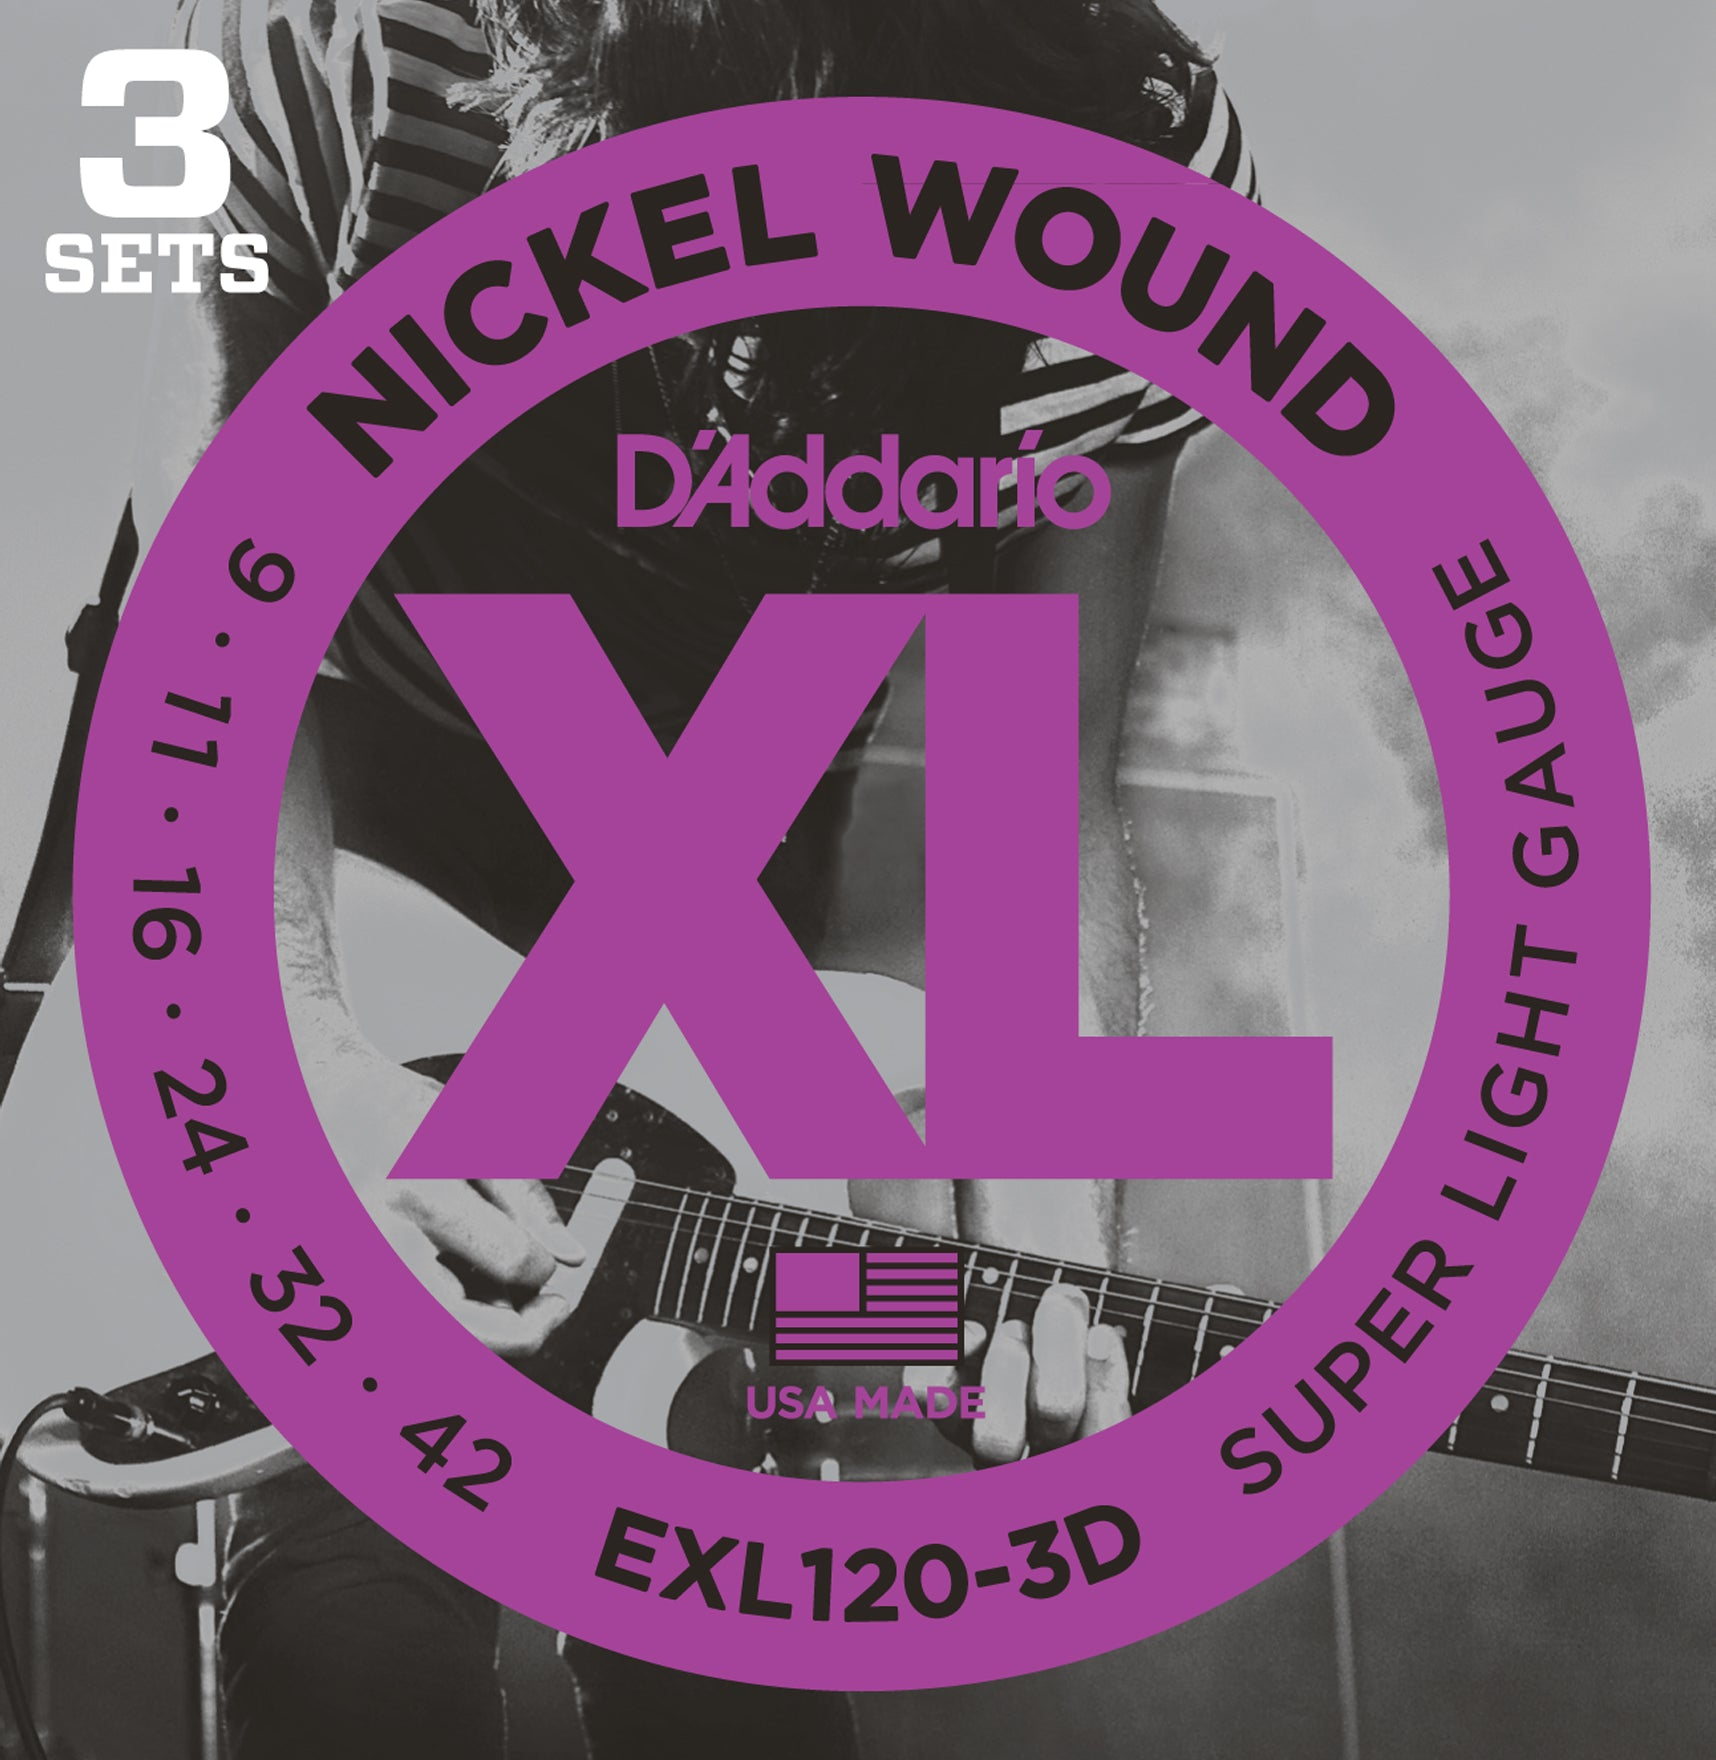 D'ADDARIO NICKEL WOUND ELECTRIC GUITAR STRINGS SUPER LIGHT 9-42 3 PACK